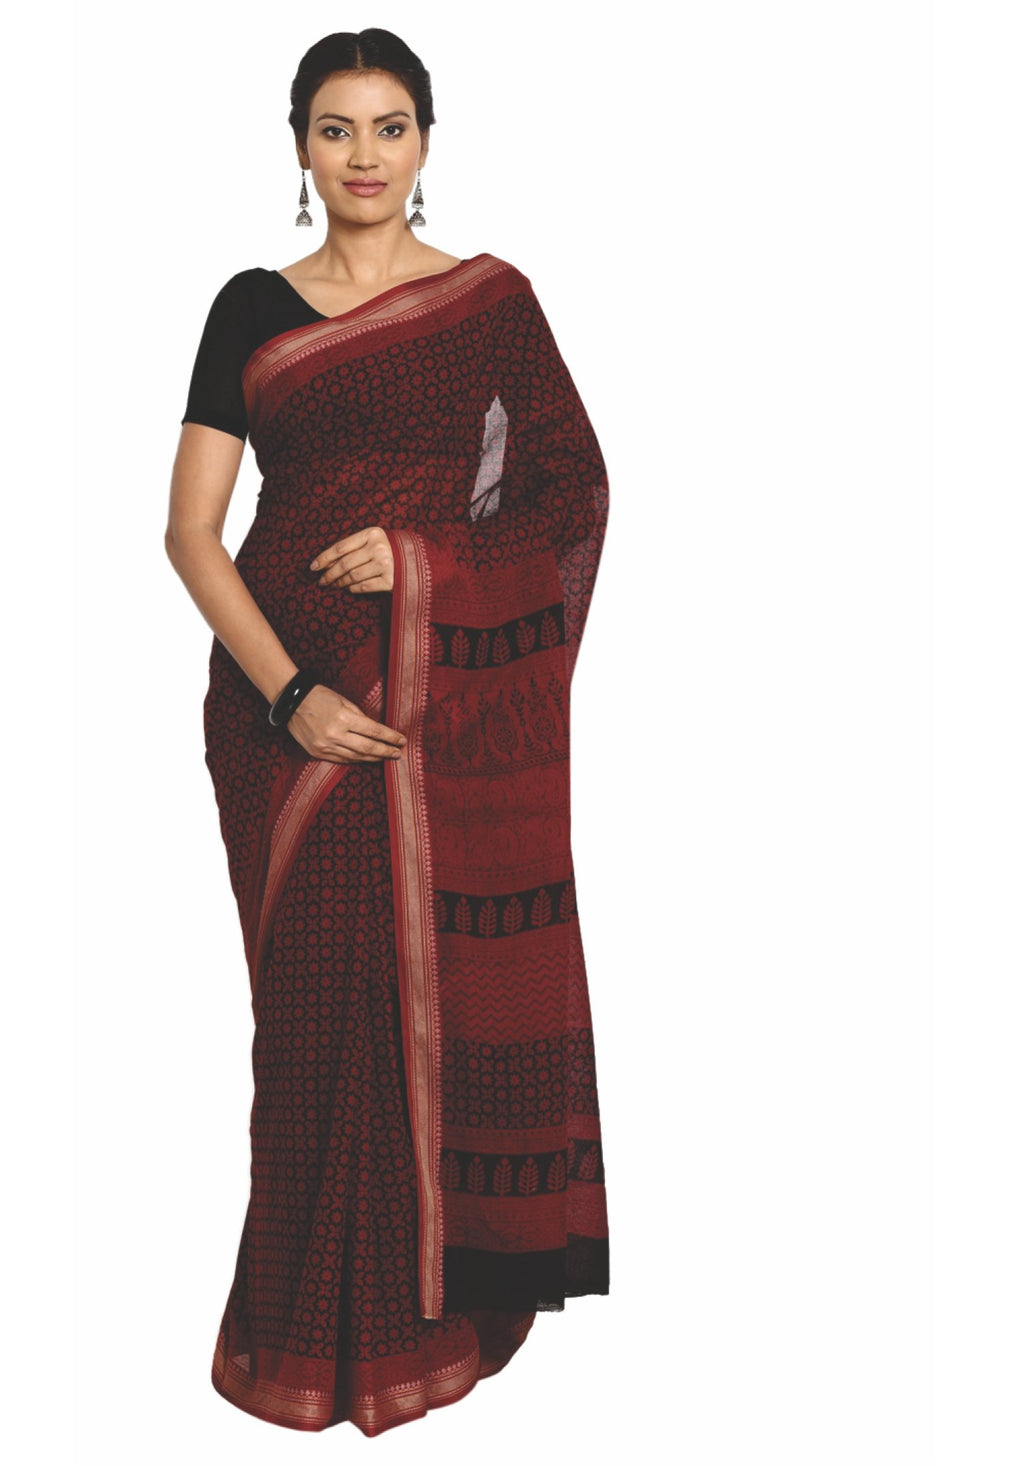 Maroon Cotton Hand Block Bagh Print Handcrafted Saree-Saree-Kalakari India-ZIBASA0066-Bagh, Cotton, Geographical Indication, Hand Blocks, Hand Crafted, Heritage Prints, Natural Dyes, Sarees, Sustainable Fabrics-[Linen,Ethnic,wear,Fashionista,Handloom,Handicraft,Indigo,blockprint,block,print,Cotton,Chanderi,Blue, latest,classy,party,bollywood,trendy,summer,style,traditional,formal,elegant,unique,style,hand,block,print, dabu,booti,gift,present,glamorous,affordable,collectible,Sari,Saree,printed, h